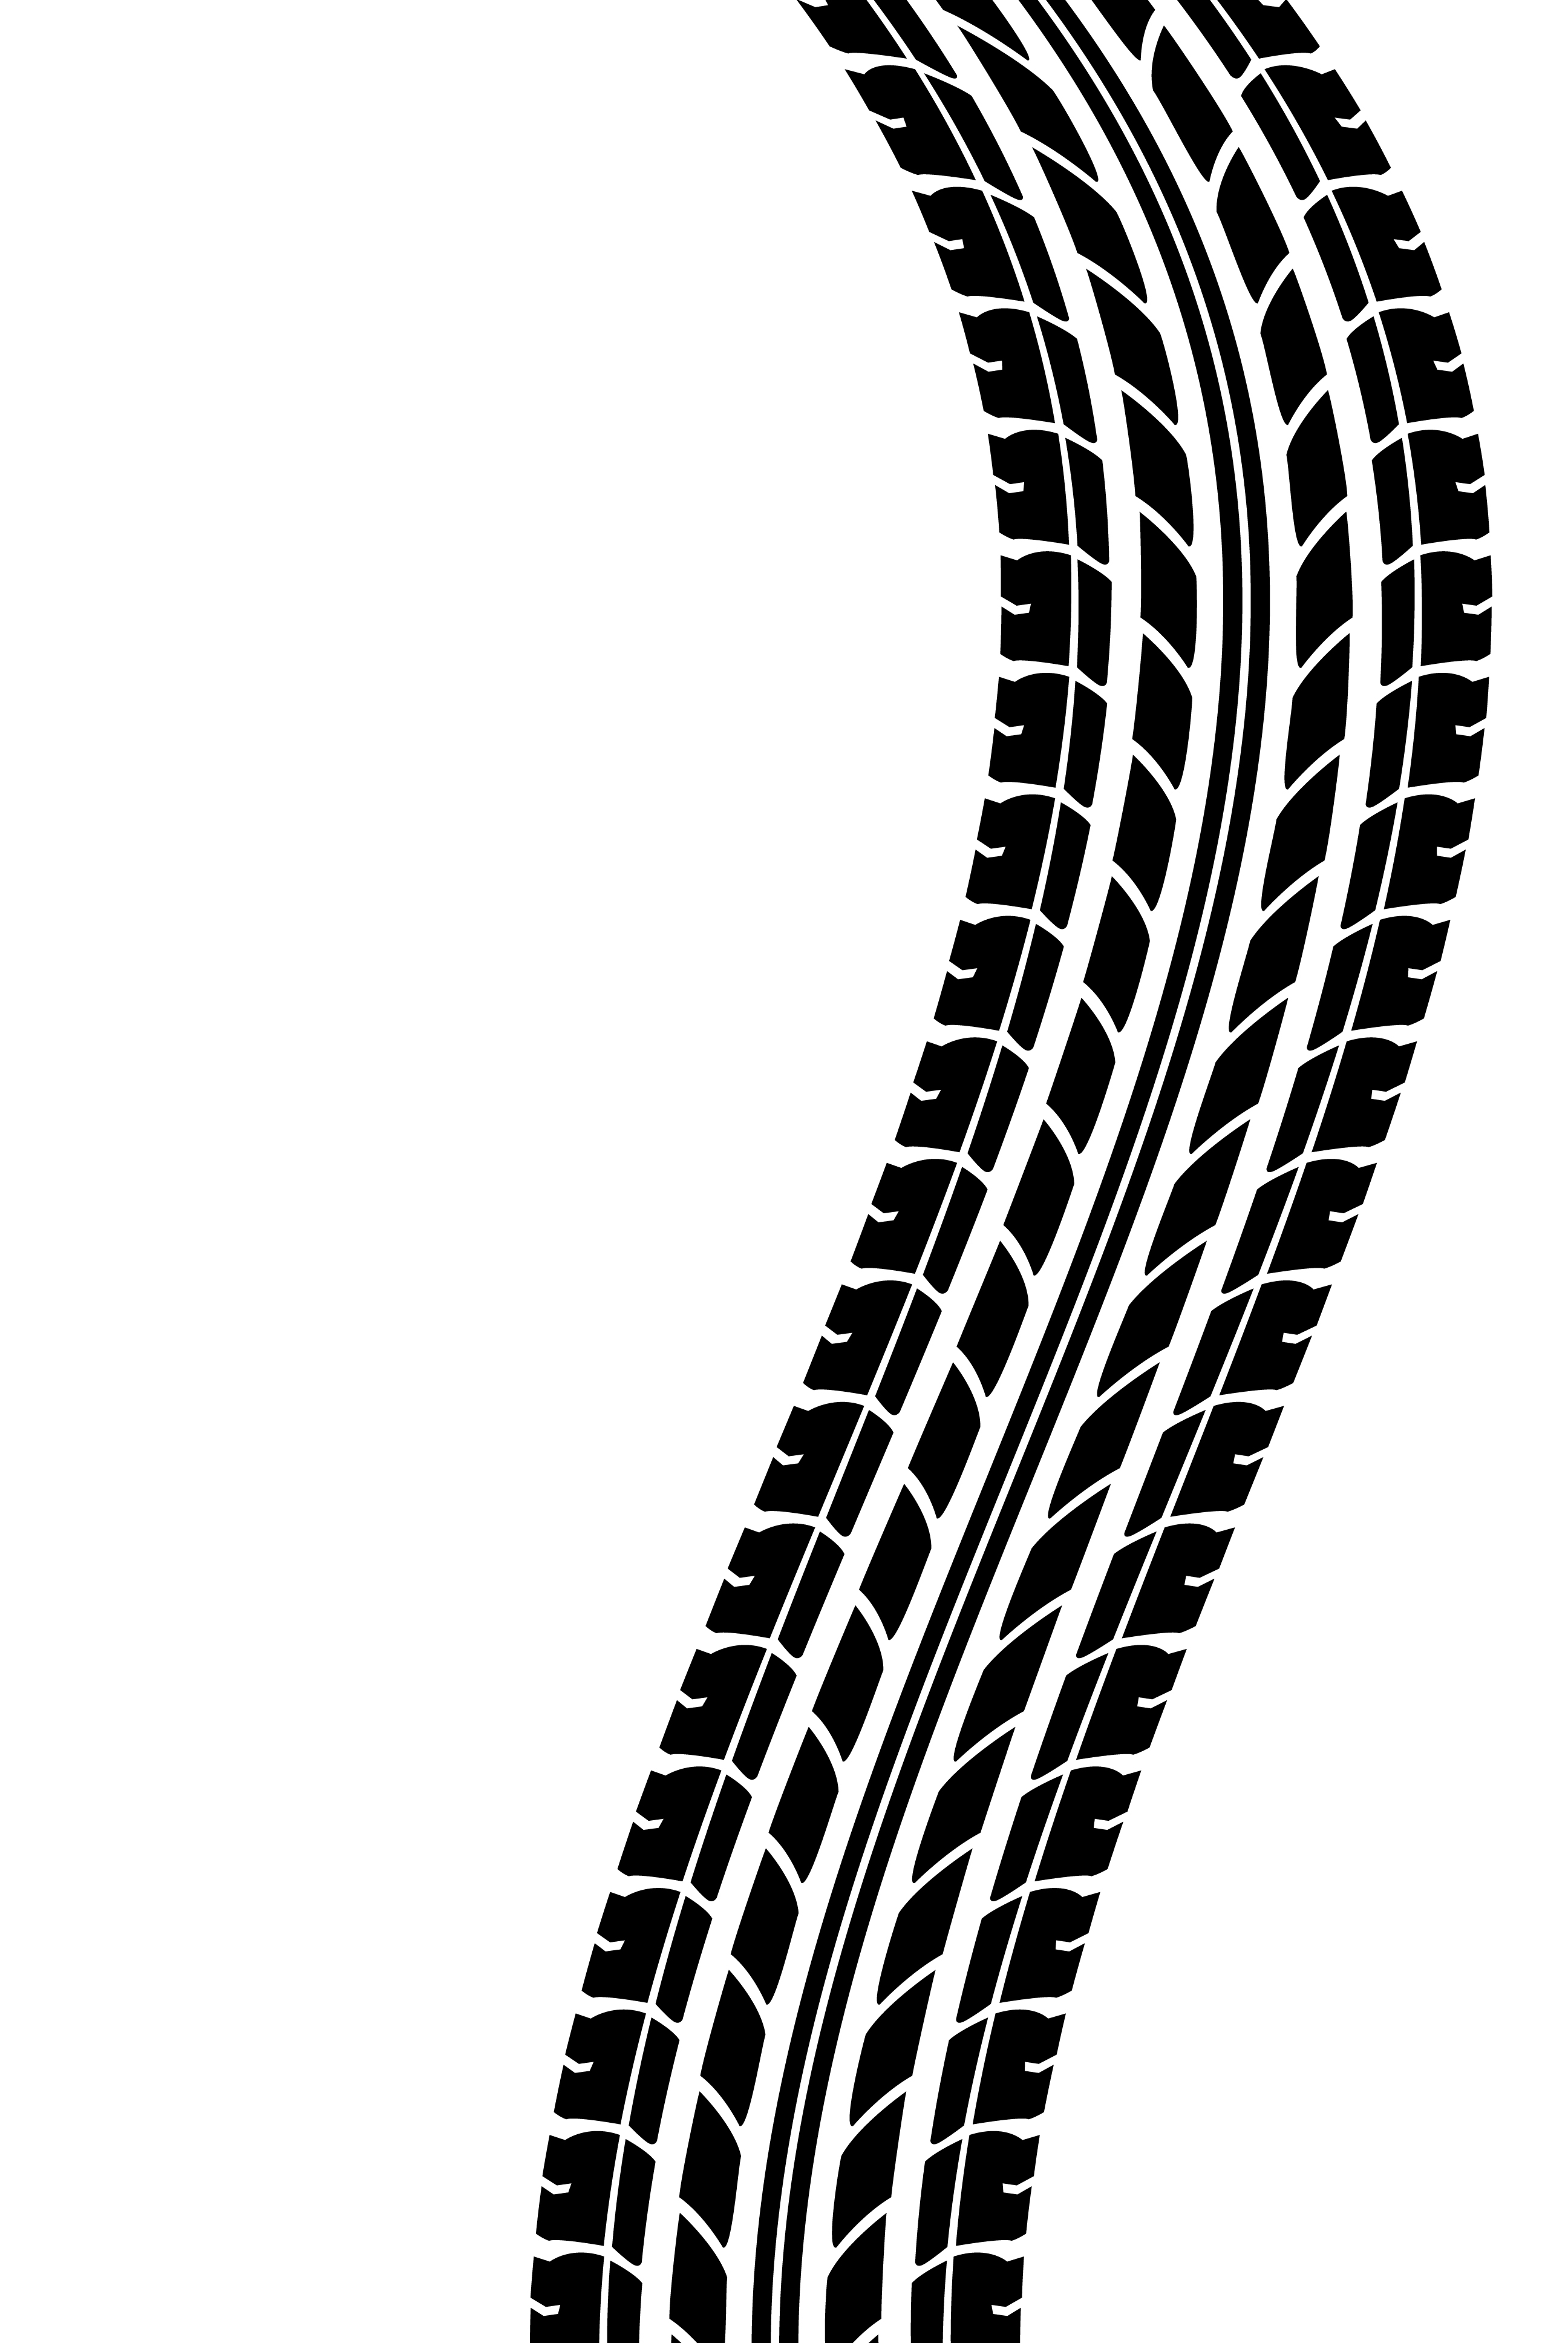 Checkered Flag Clip Art 10173 in addition Clipart NiXeoB6iB in addition TV Static 96 besides Audi Logo additionally Motorhead Logo Vector 2748. on transparent car